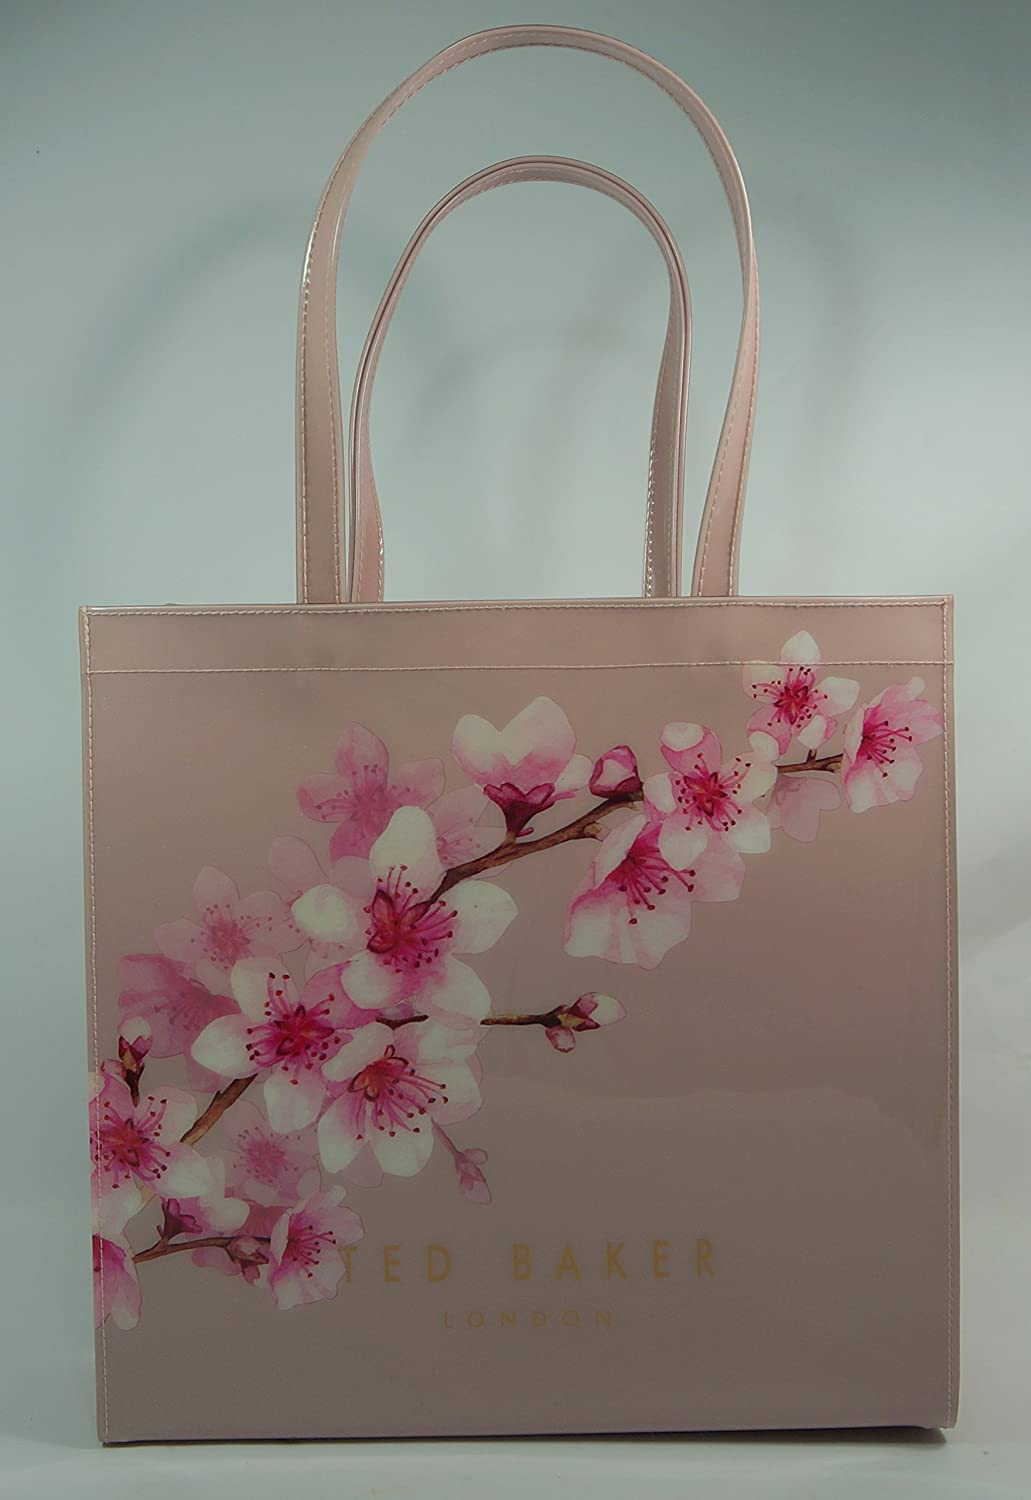 39d28d5c15 Buy Ted Baker Pammcon Soft Blossom Large Icon Tote Light Pink Online at Low  Prices in India - Amazon.in